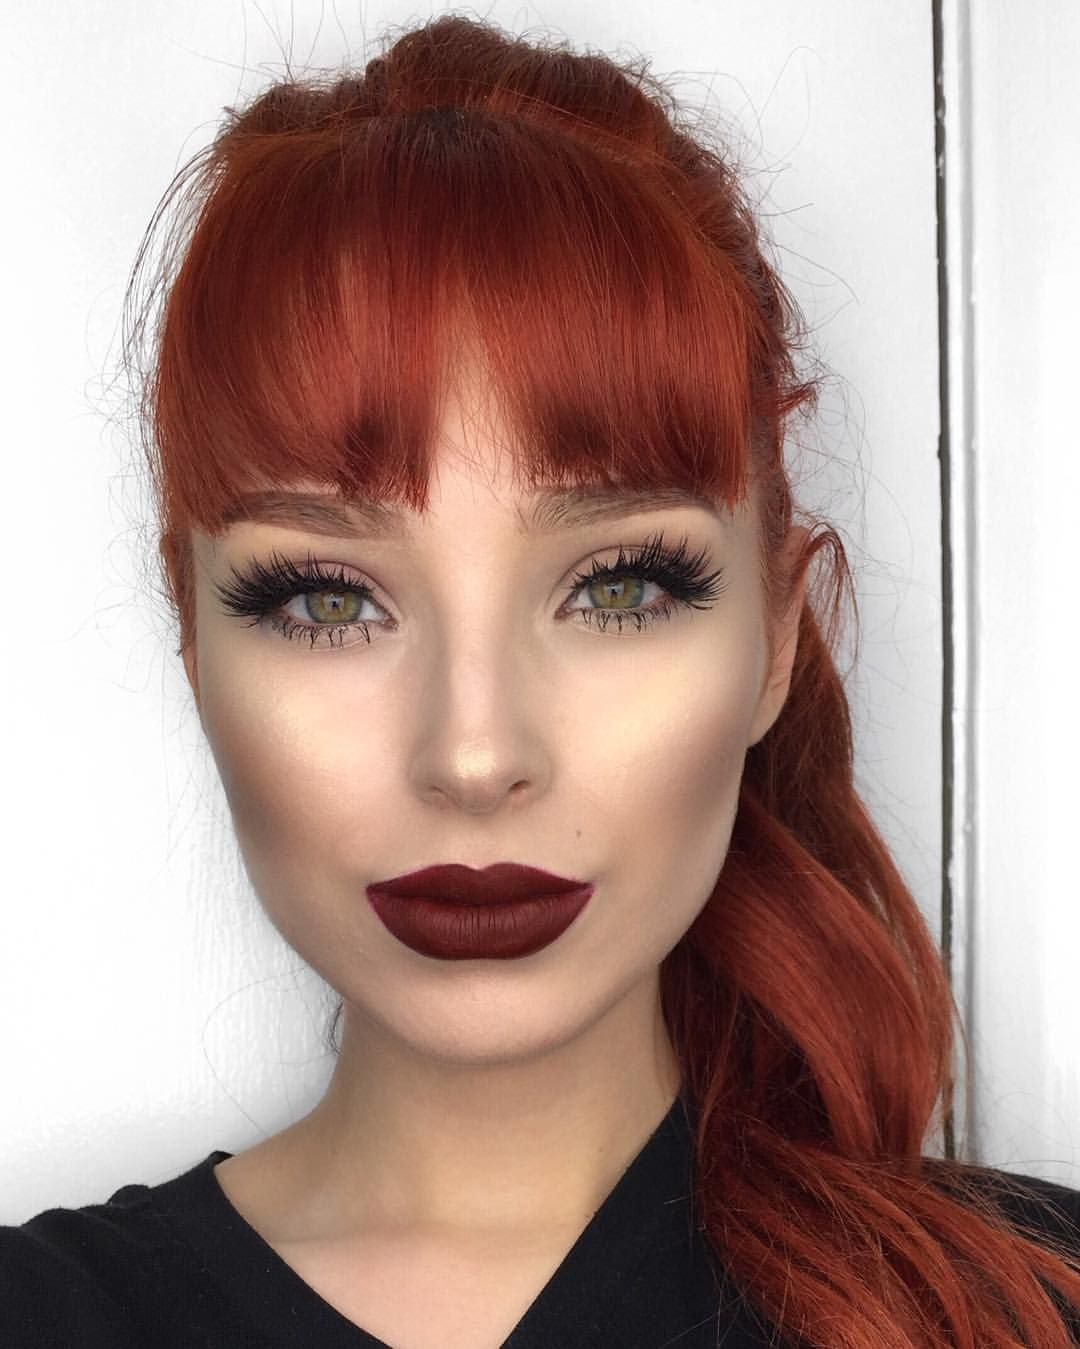 """Photo of Lupe Sujey Cuevas on Instagram: """"YouTube video on this look. Link on bio. 🐱  I wanted to do a video on my hair color but today I realized my roots are growing. 😓 So next…"""""""